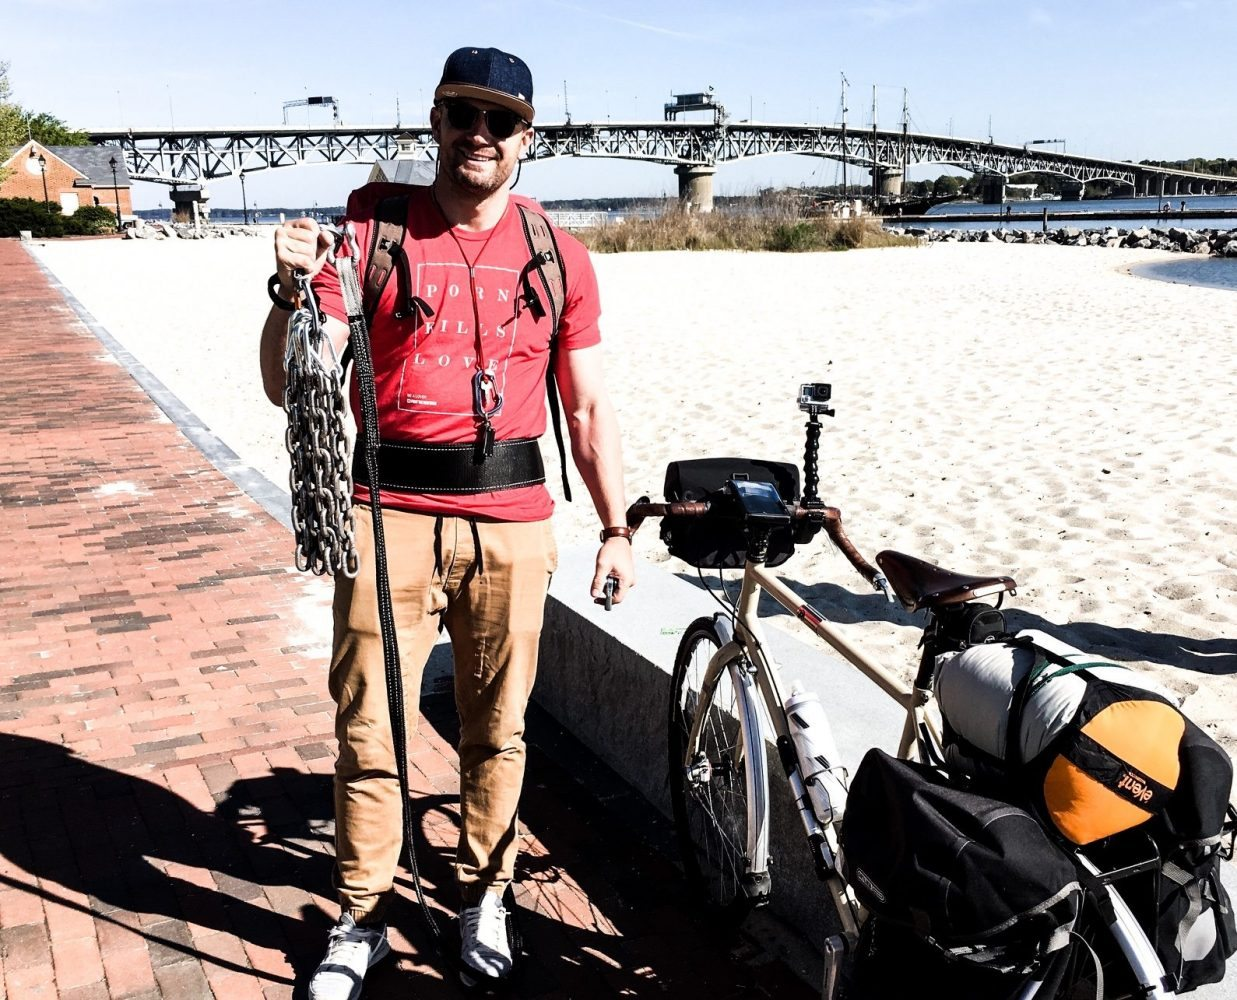 How This Guy Overcame A Porn Struggle And Biked 3,800 Miles Across America (VIDEO)